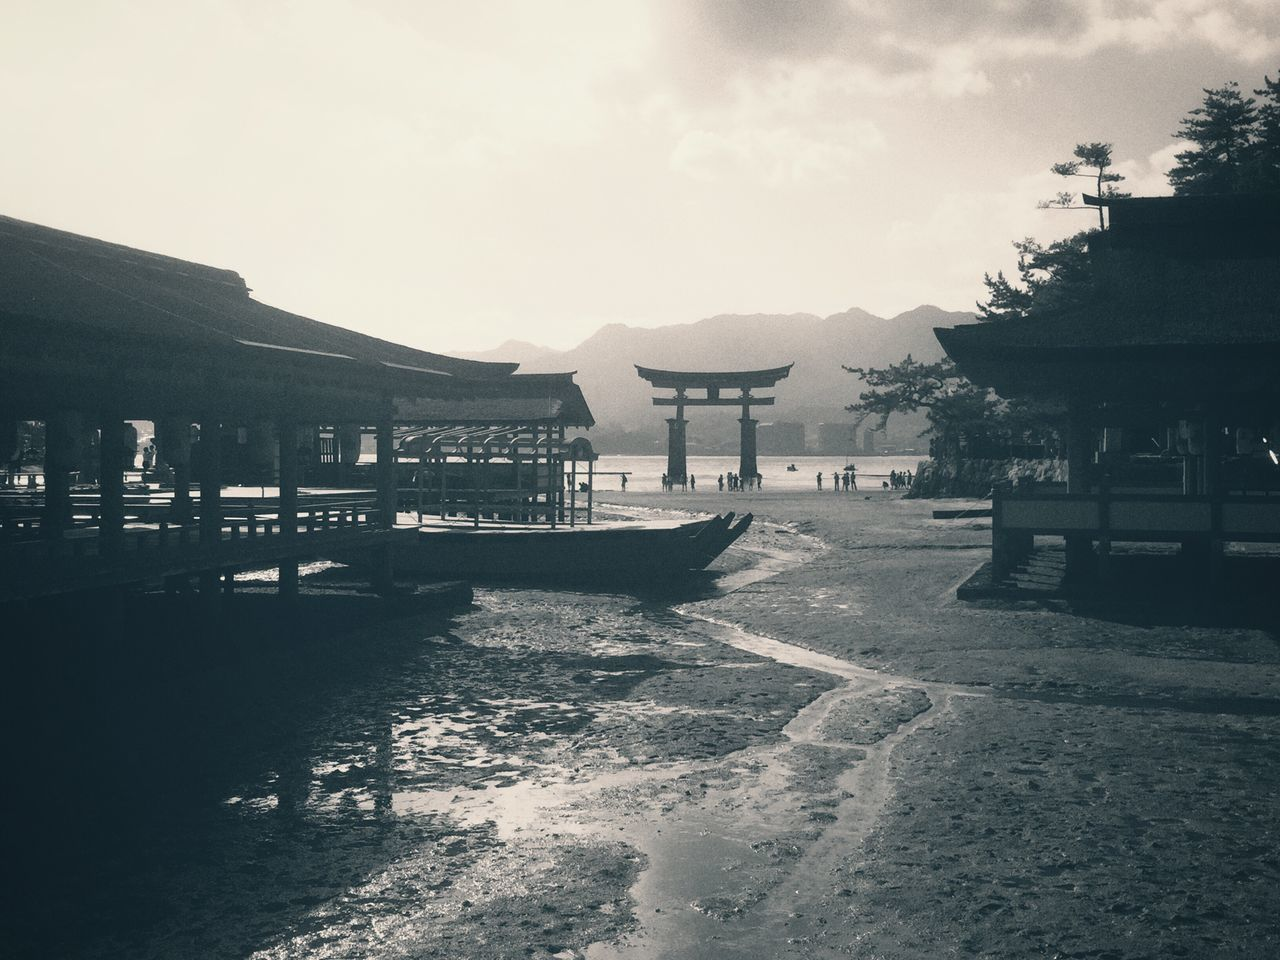 Memior of Miyajima and the Torii gate Shrine Of Japan By The Bay Low Tide Torii Gate Torii In The Sea Sacred Place Japanese Architecture Grand Architecture Historic Site Famous Landmark at Miyajima Island Itsukushima Shrine Hiroshima Hiroshima-shi,Japan